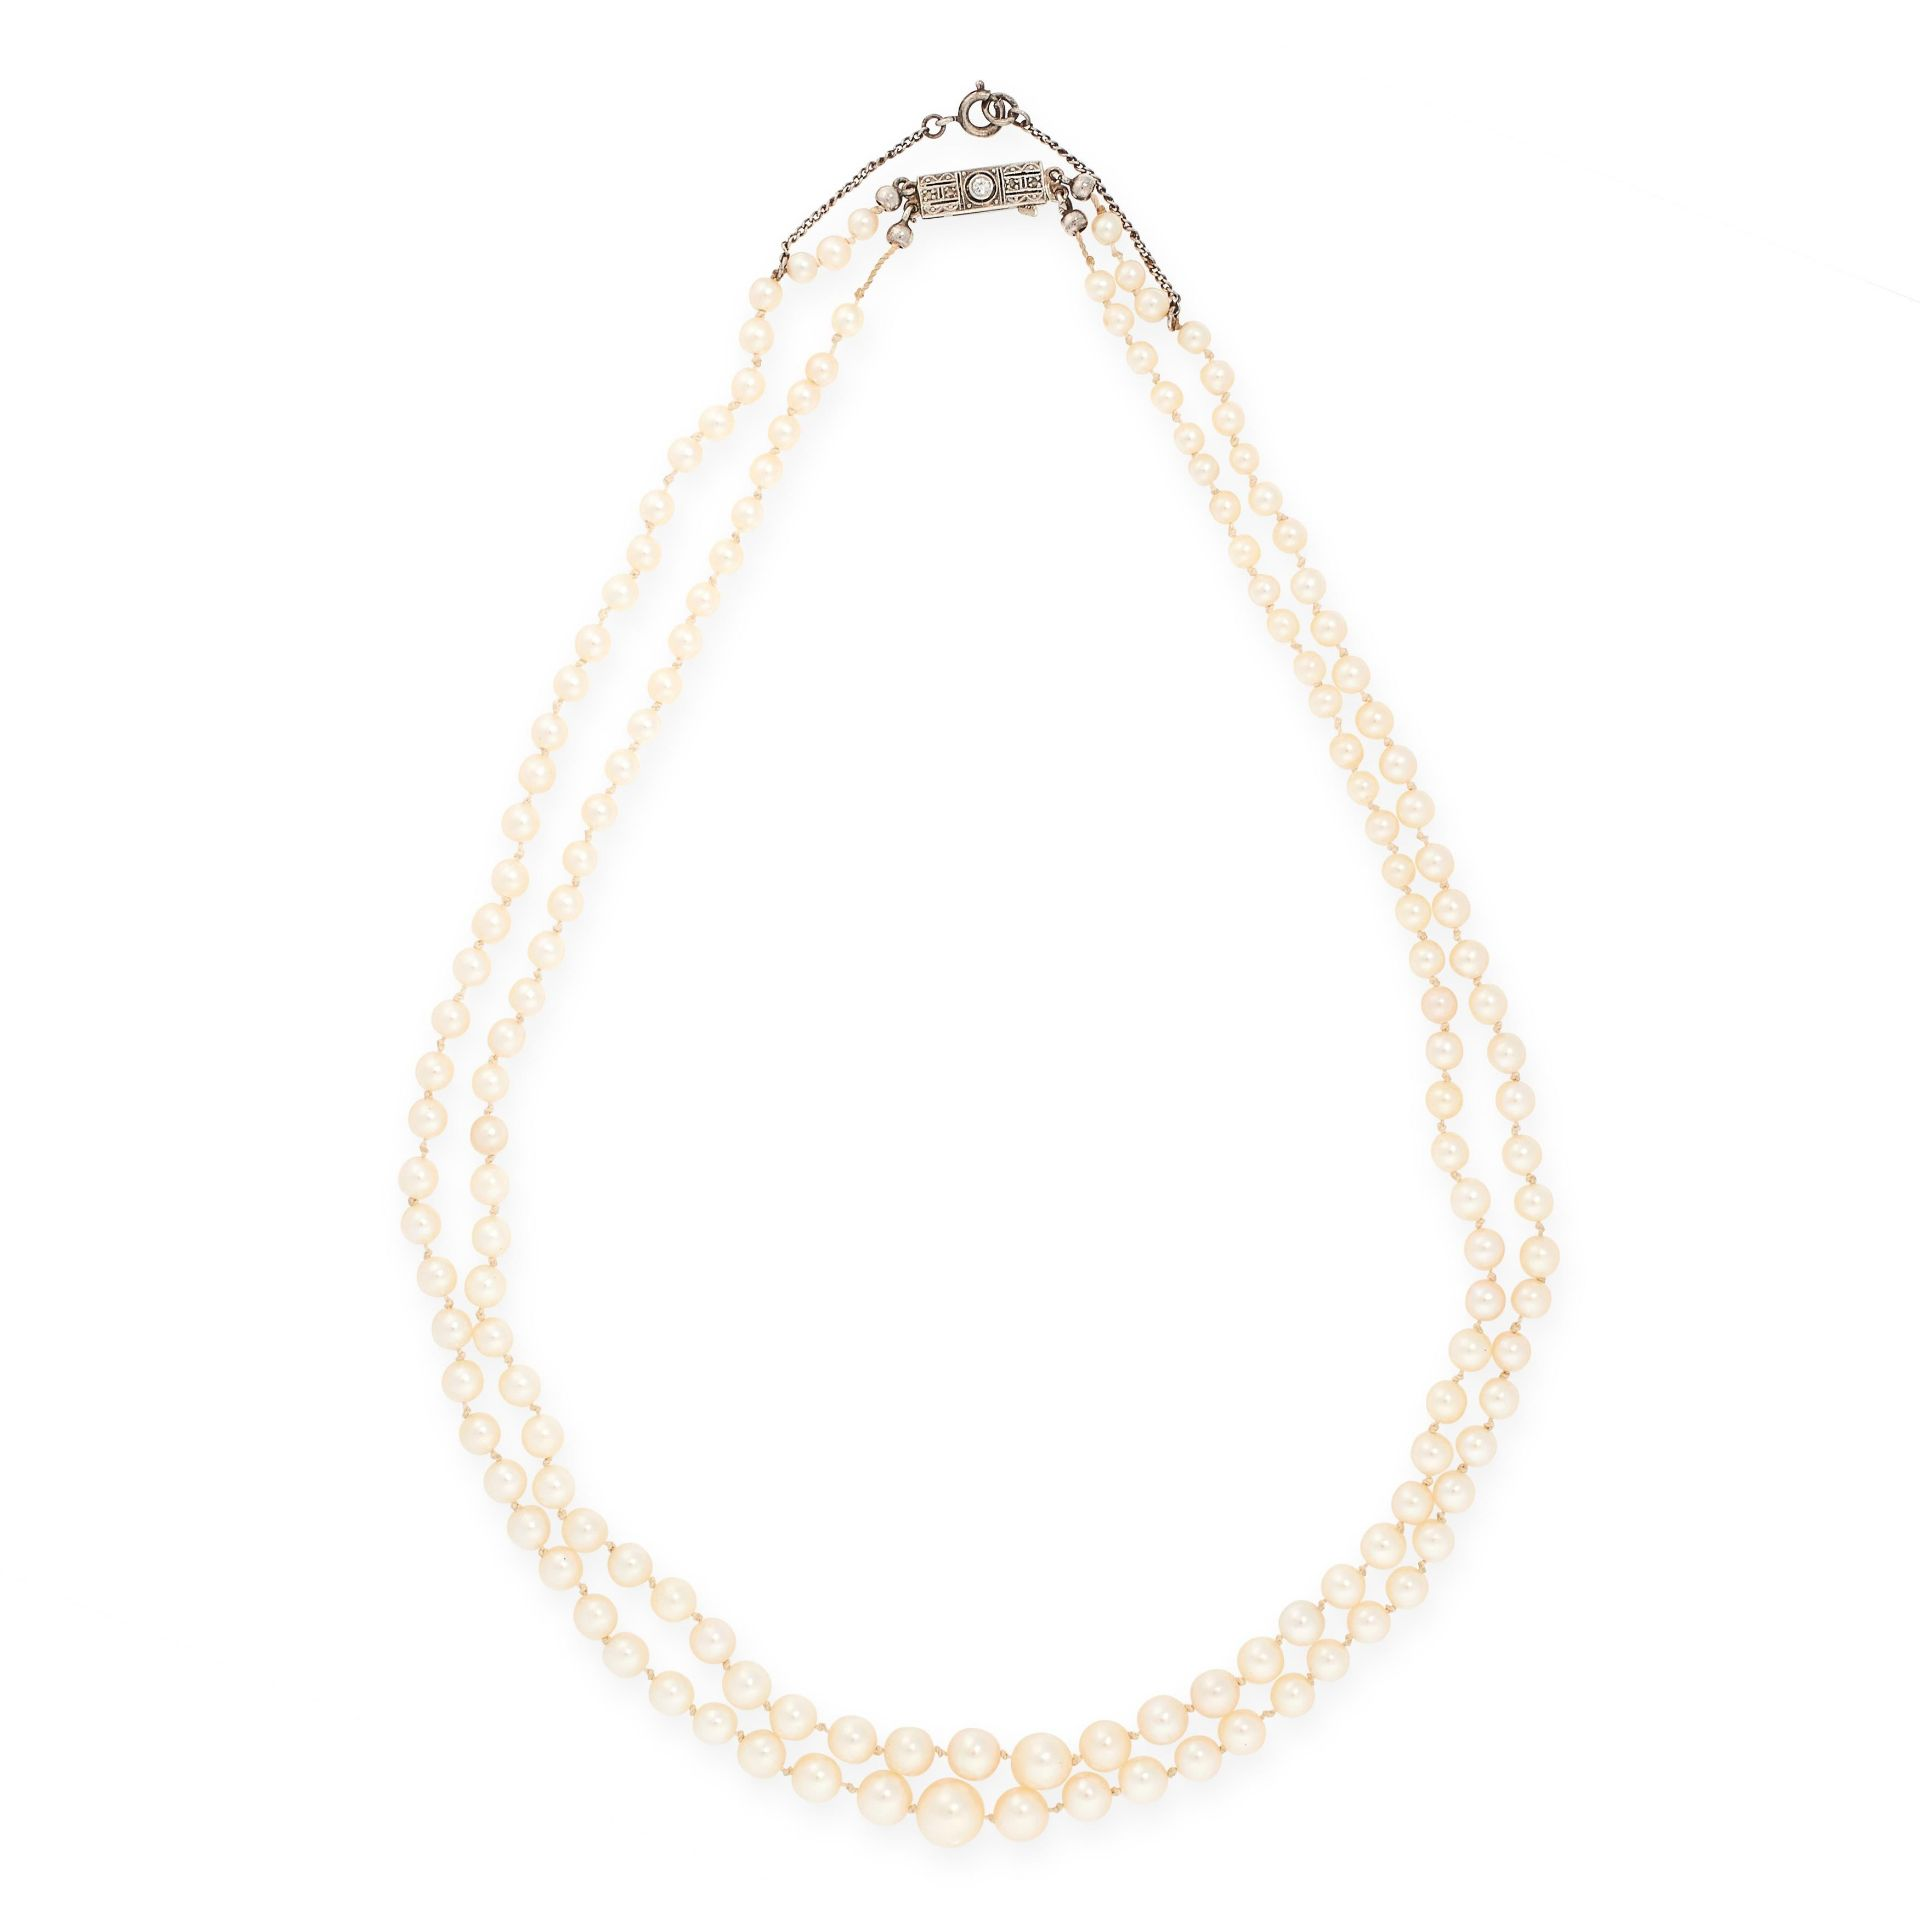 A PEARL AND DIAMOND NECKLACE, CIRCA 1940 in 18ct white gold, comprising two rows of one hundred